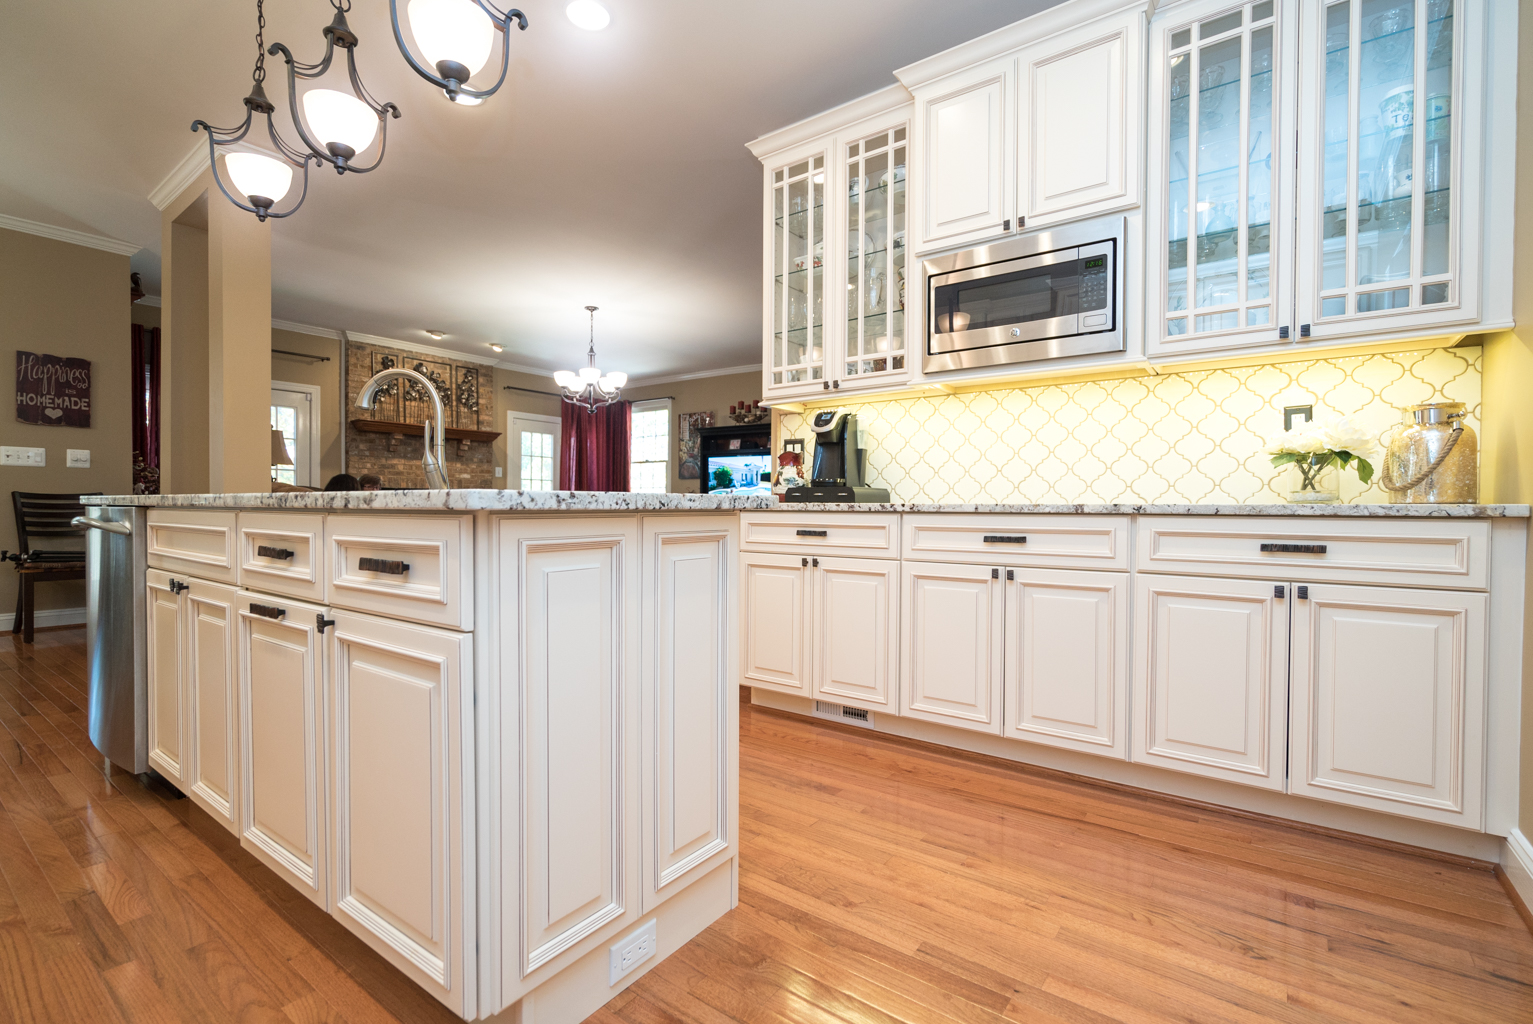 Kitchen Cabinets in Leesburg VA Kitchen Cabinets